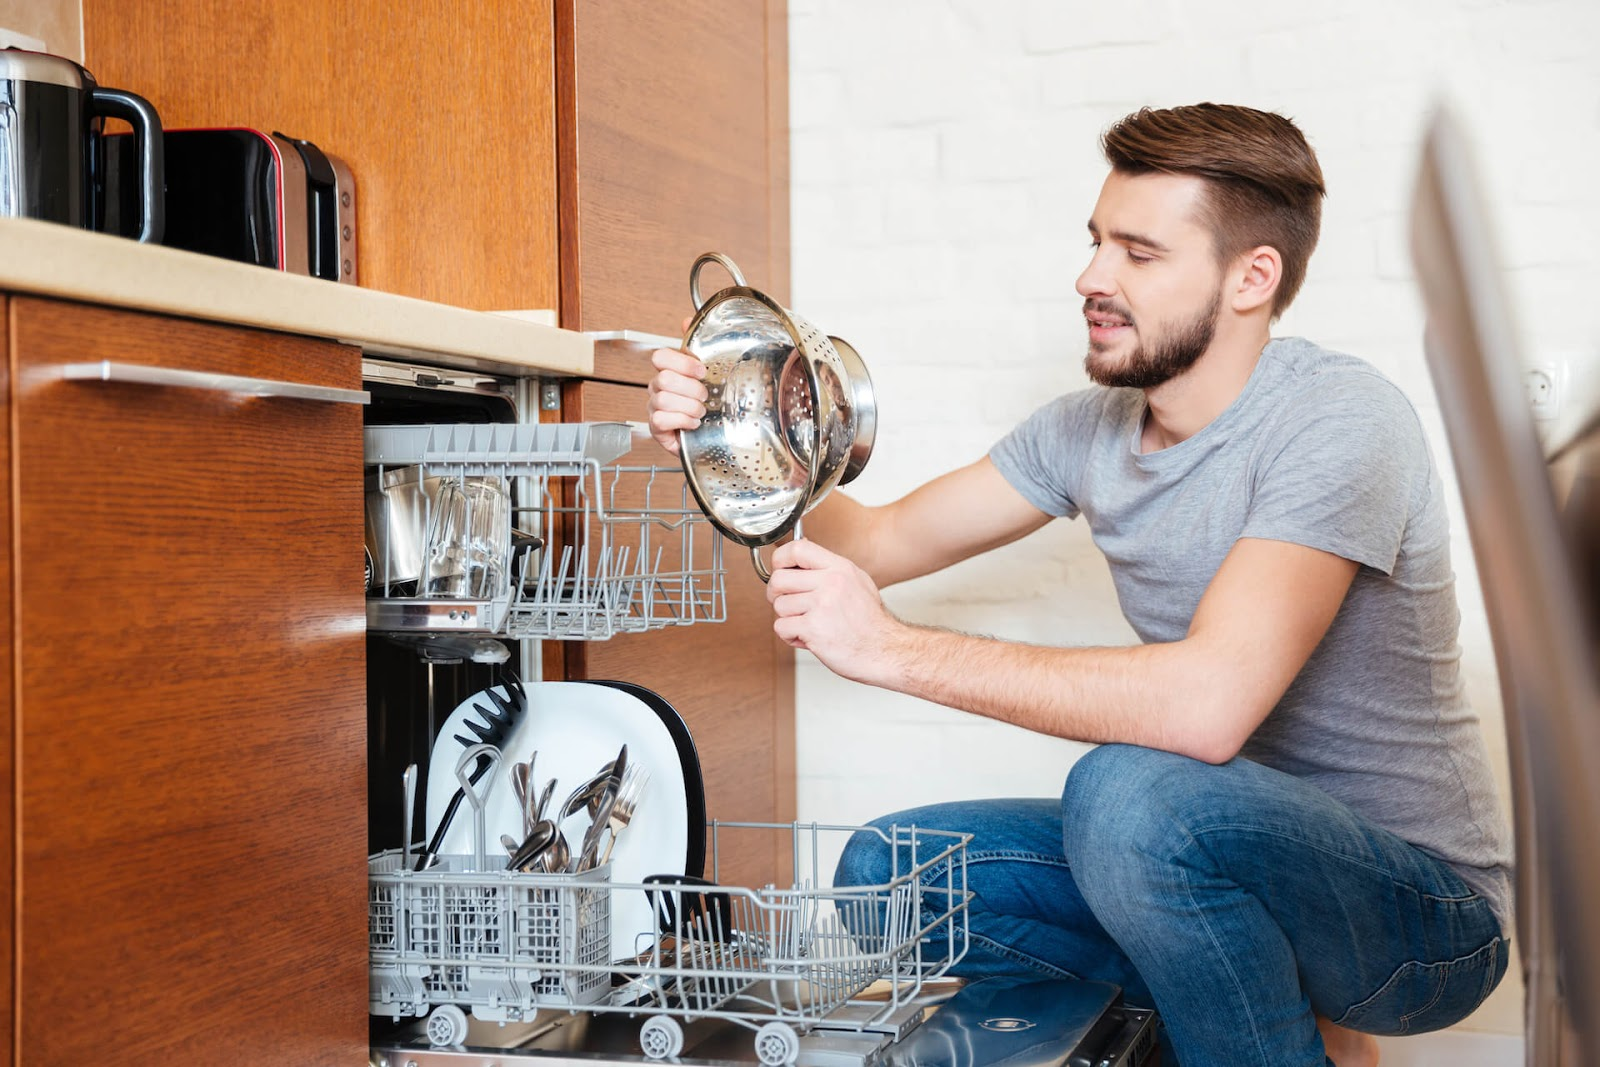 Man looking at dishes in his dishwasher